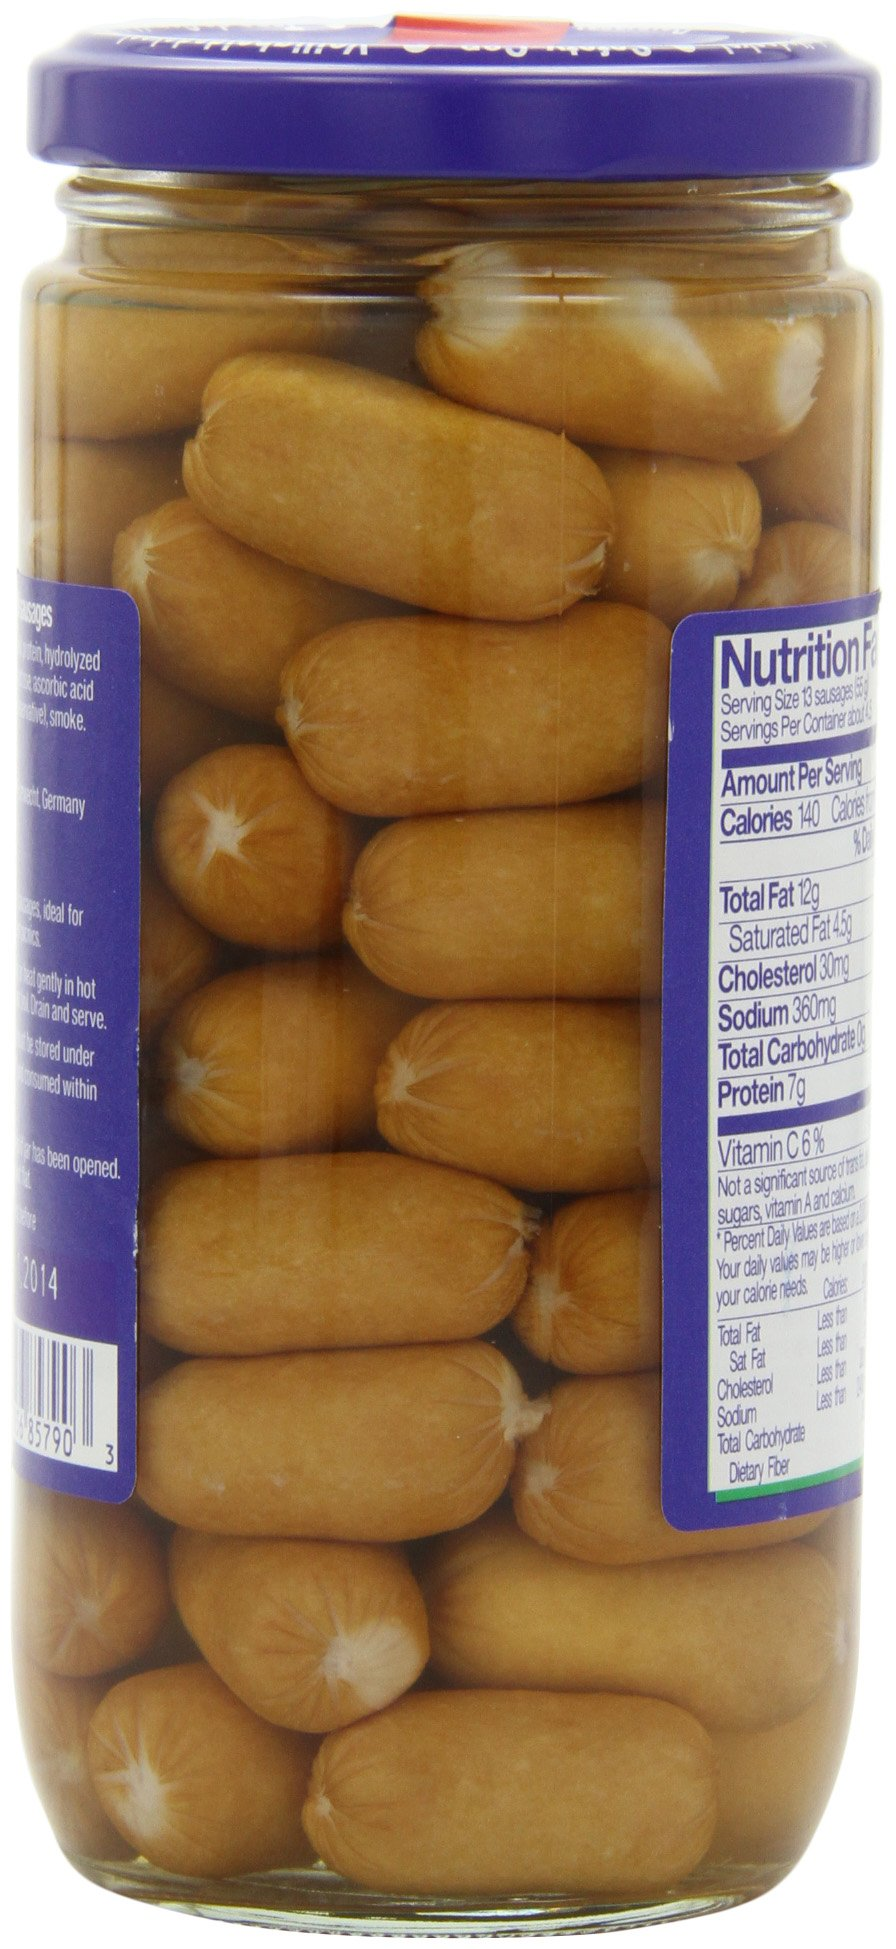 Meica Mini Wini Sixty Cocktail Sausages, 8.8 Ounce by Meica (Image #6)